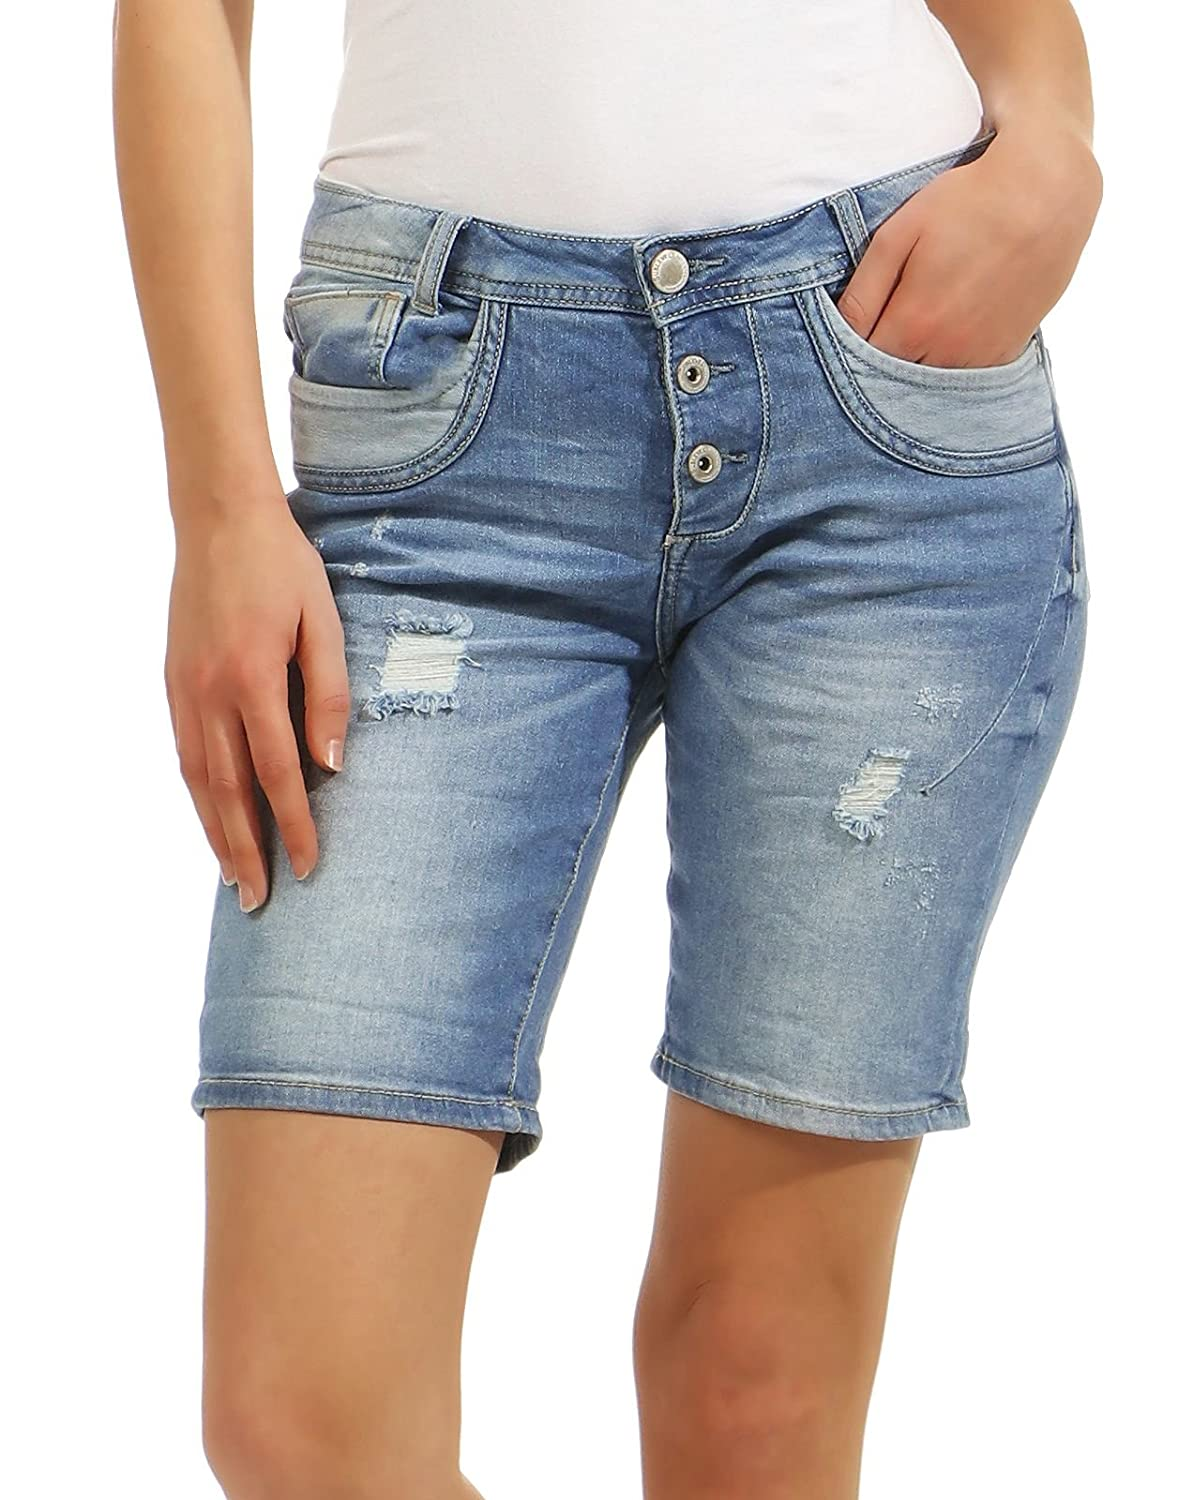 aa5ed26fa6d615 Sublevel Damen Jeans Shorts LSL-327 Bermuda Pants Used Look 60%OFF ...